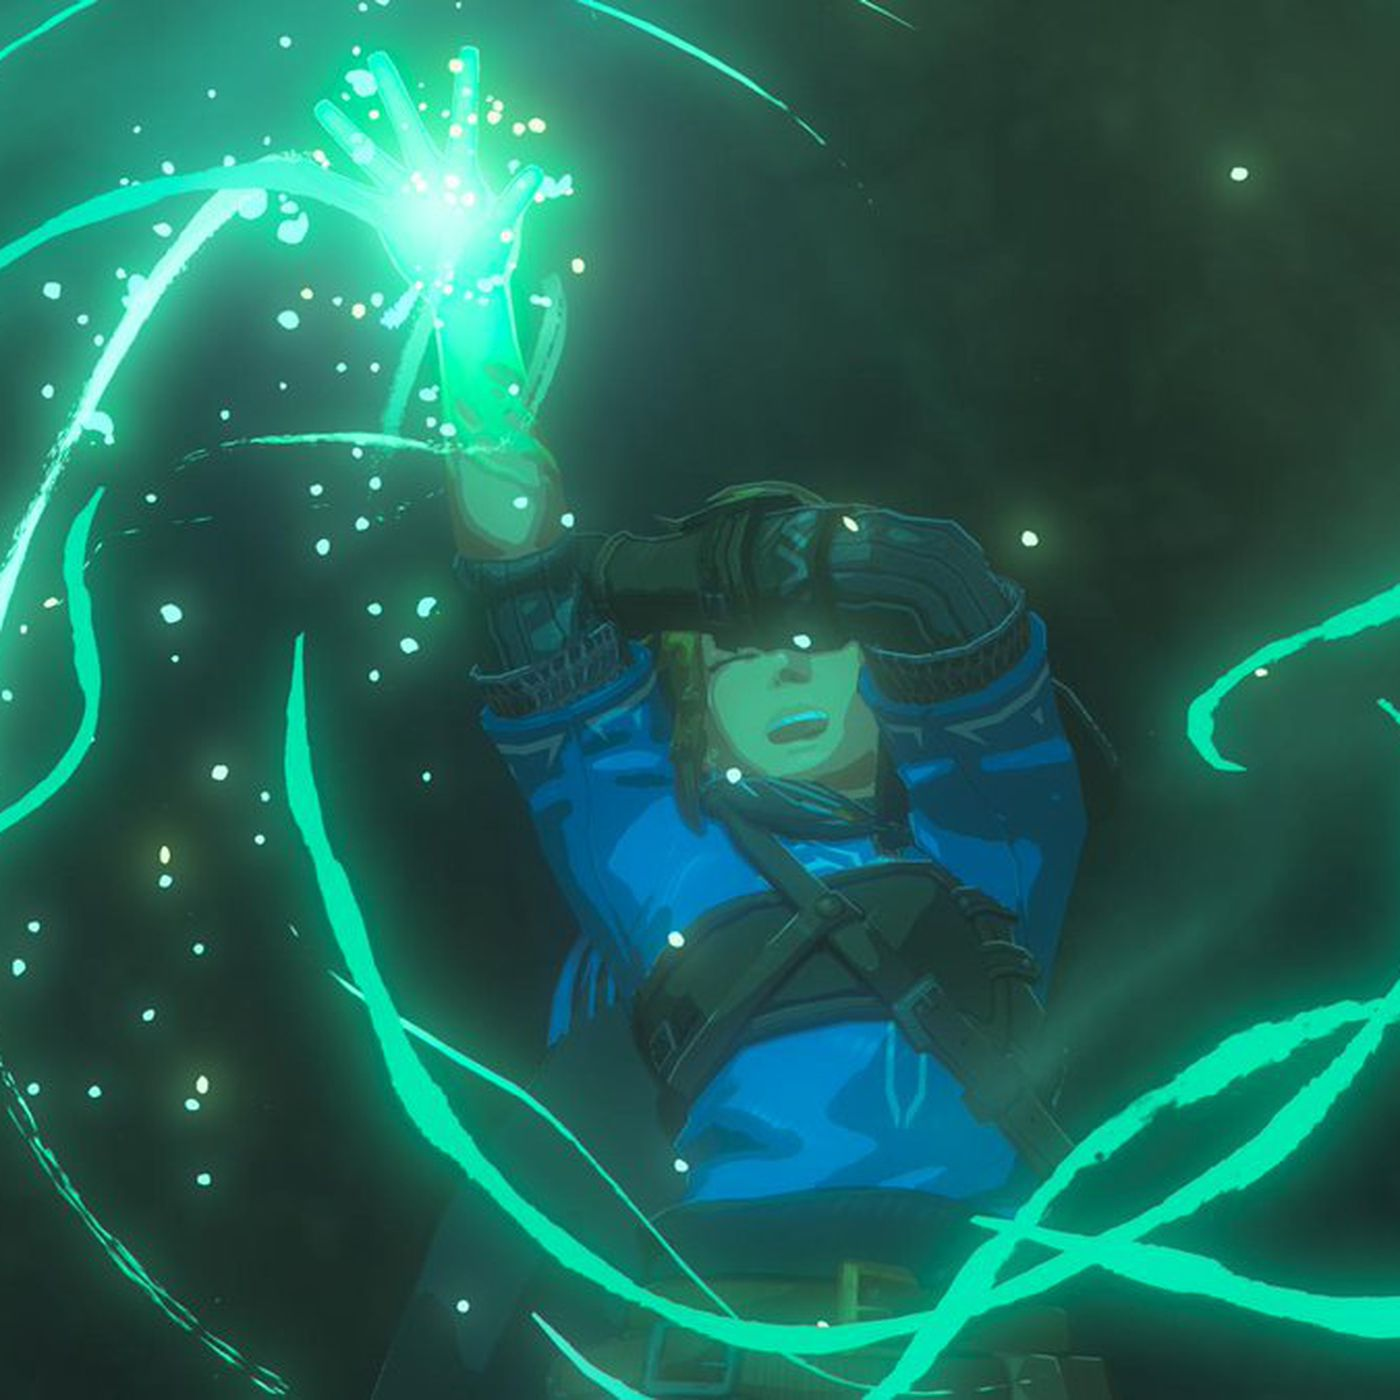 Nintendo Is Working On A Full Sequel To The Legend Of Zelda